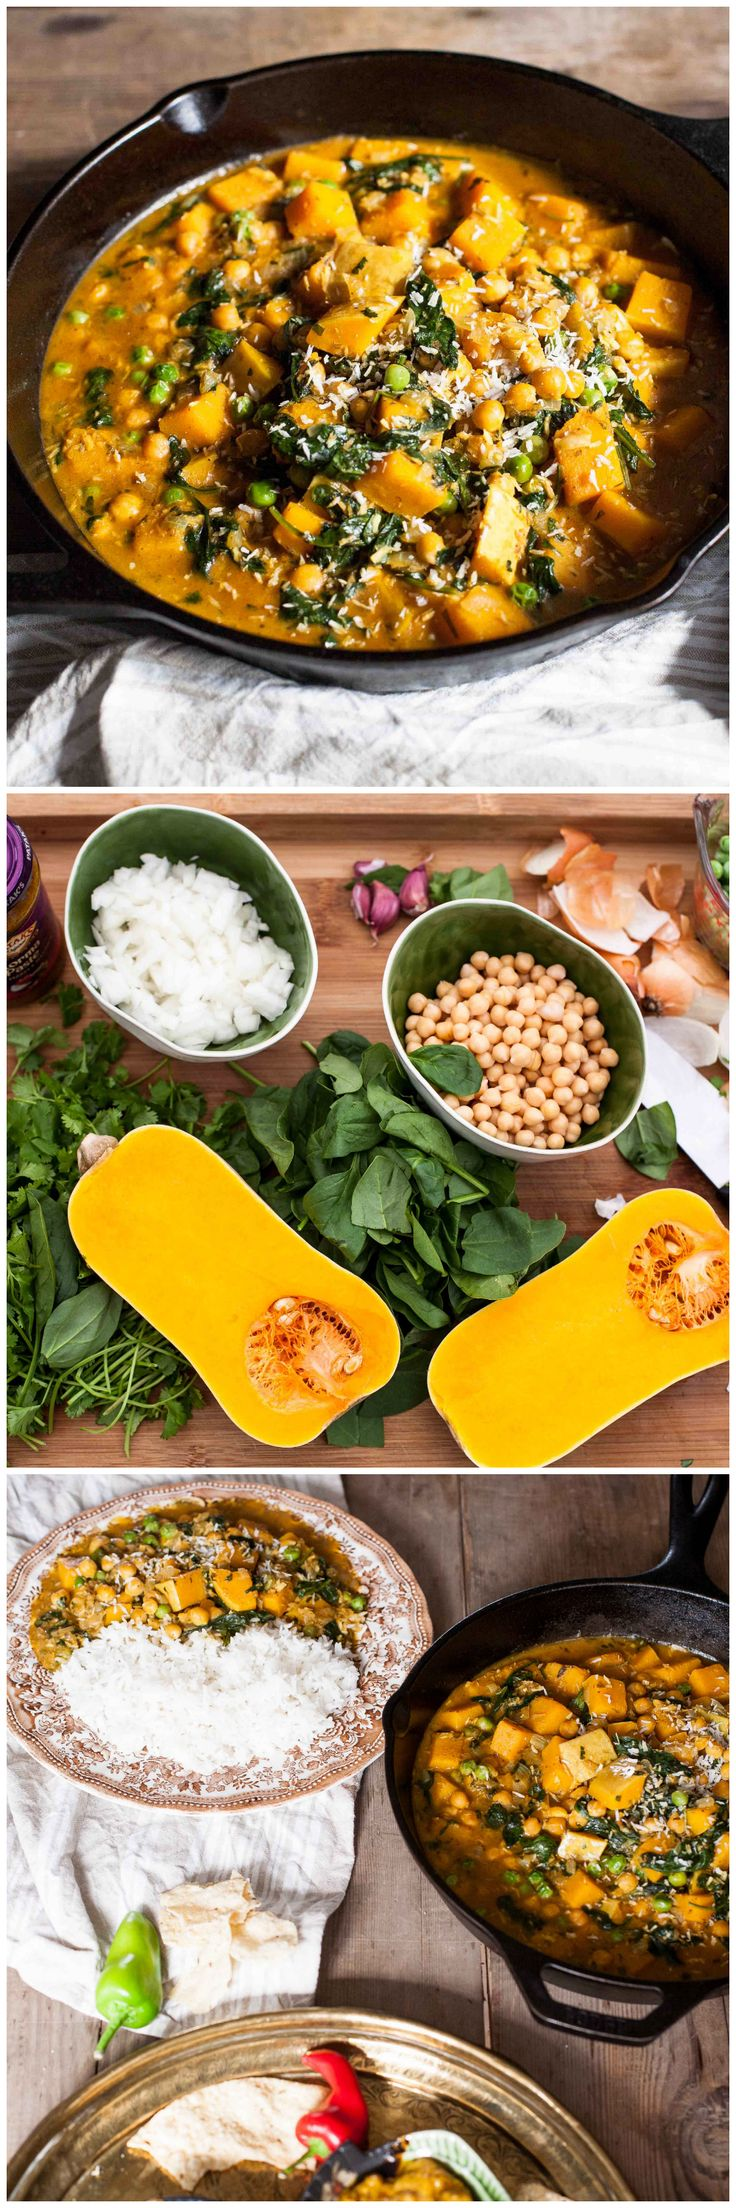 Chickpea and Butternut Squash Curry #vegetarian #MeatlessMonday